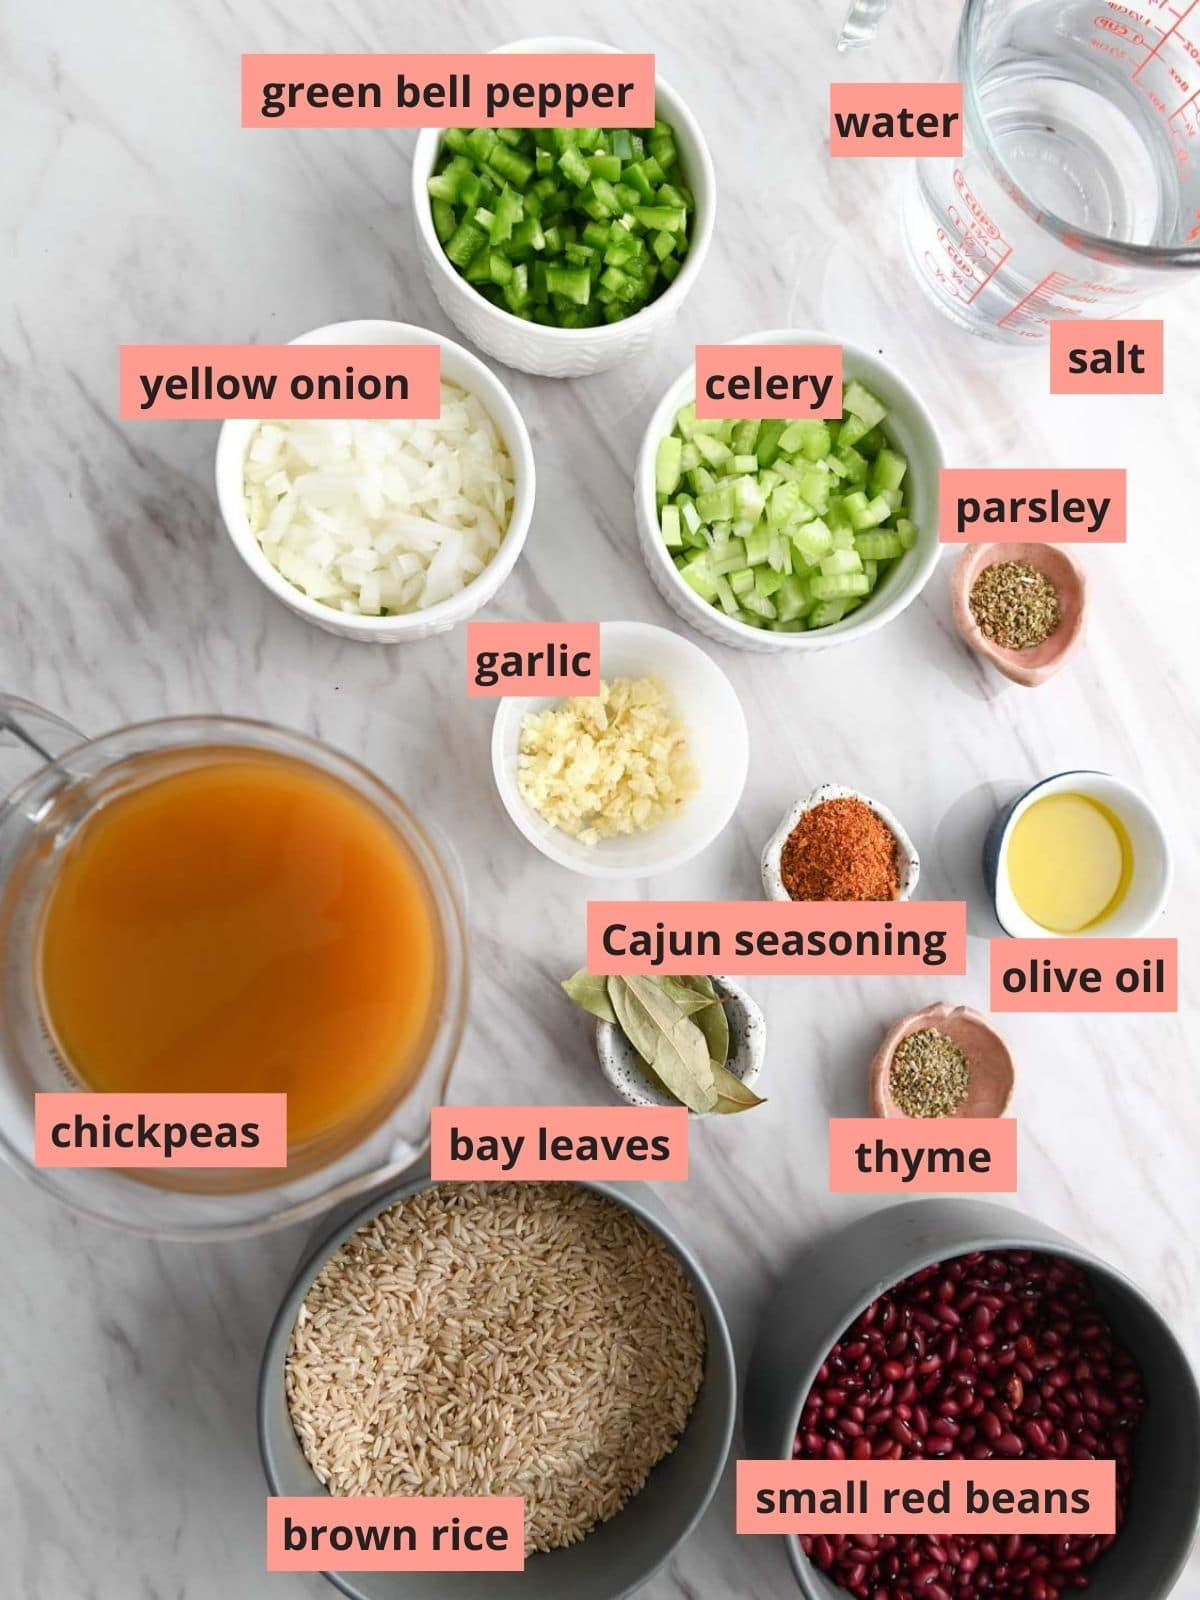 Labeled ingredients used to make instant pot rice and red beans